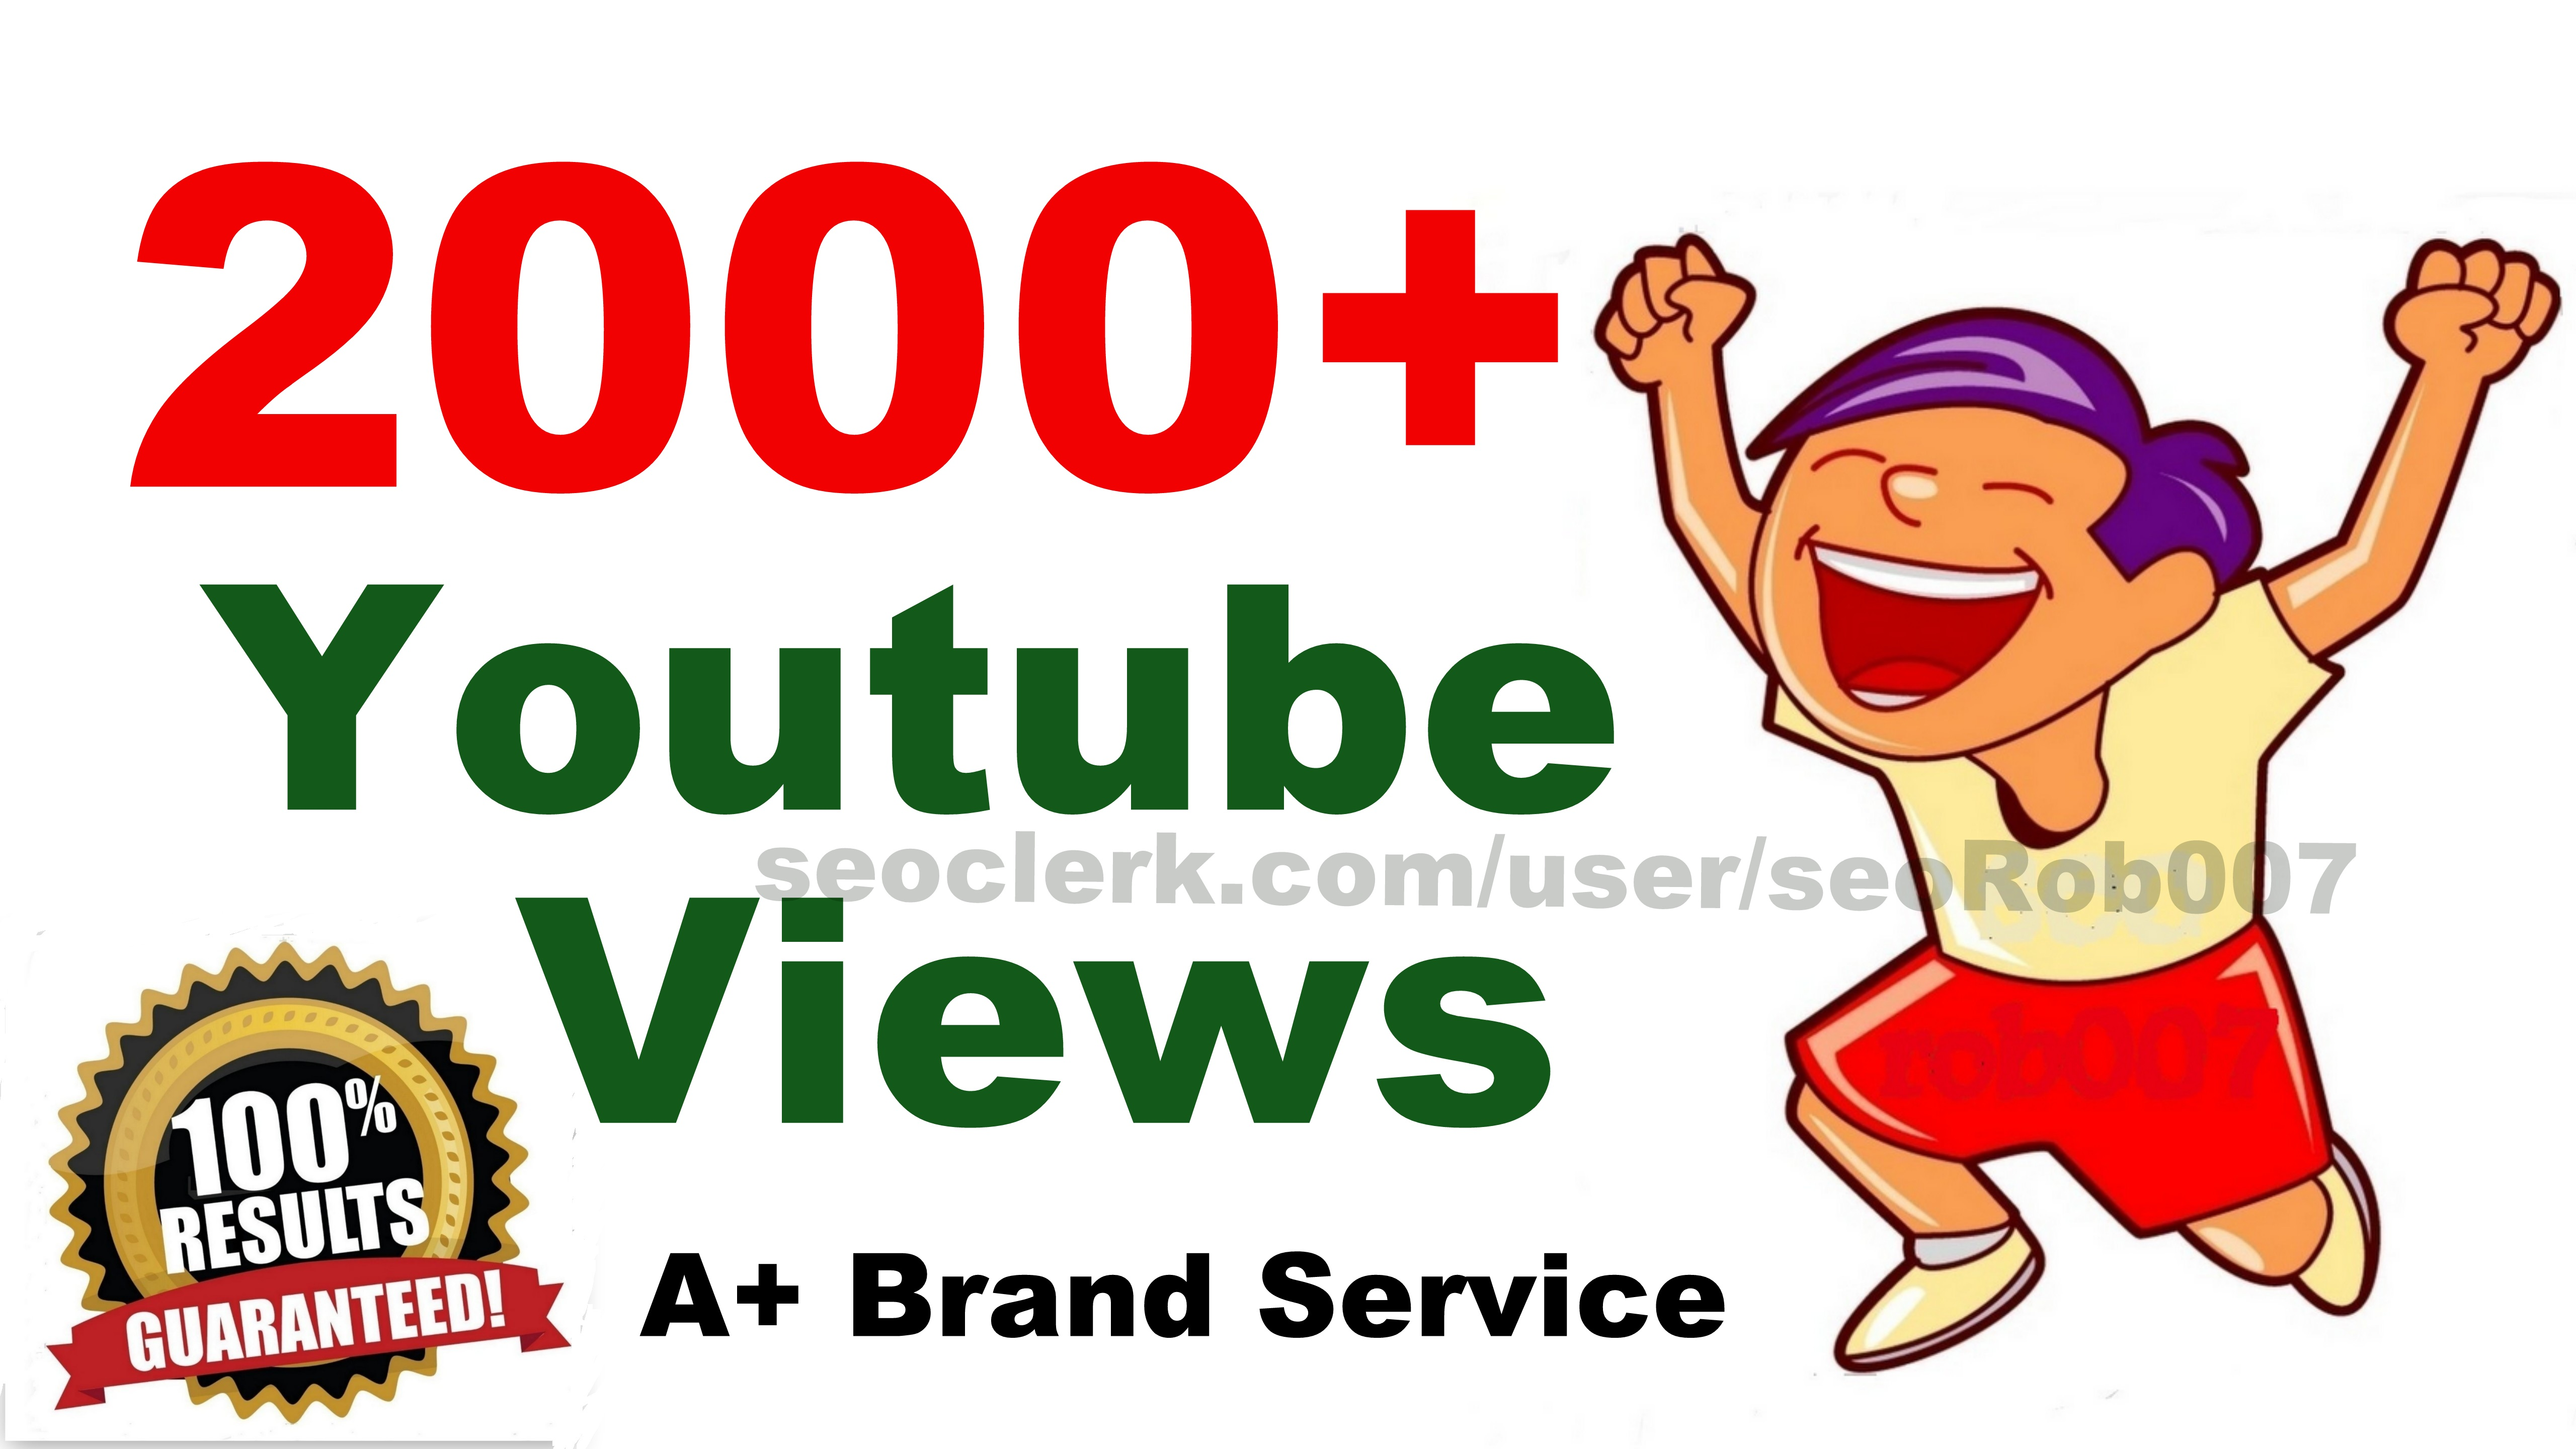 2000+ Y0uTube Vieews in 24-48 Hours Good Retention A+ BrandService